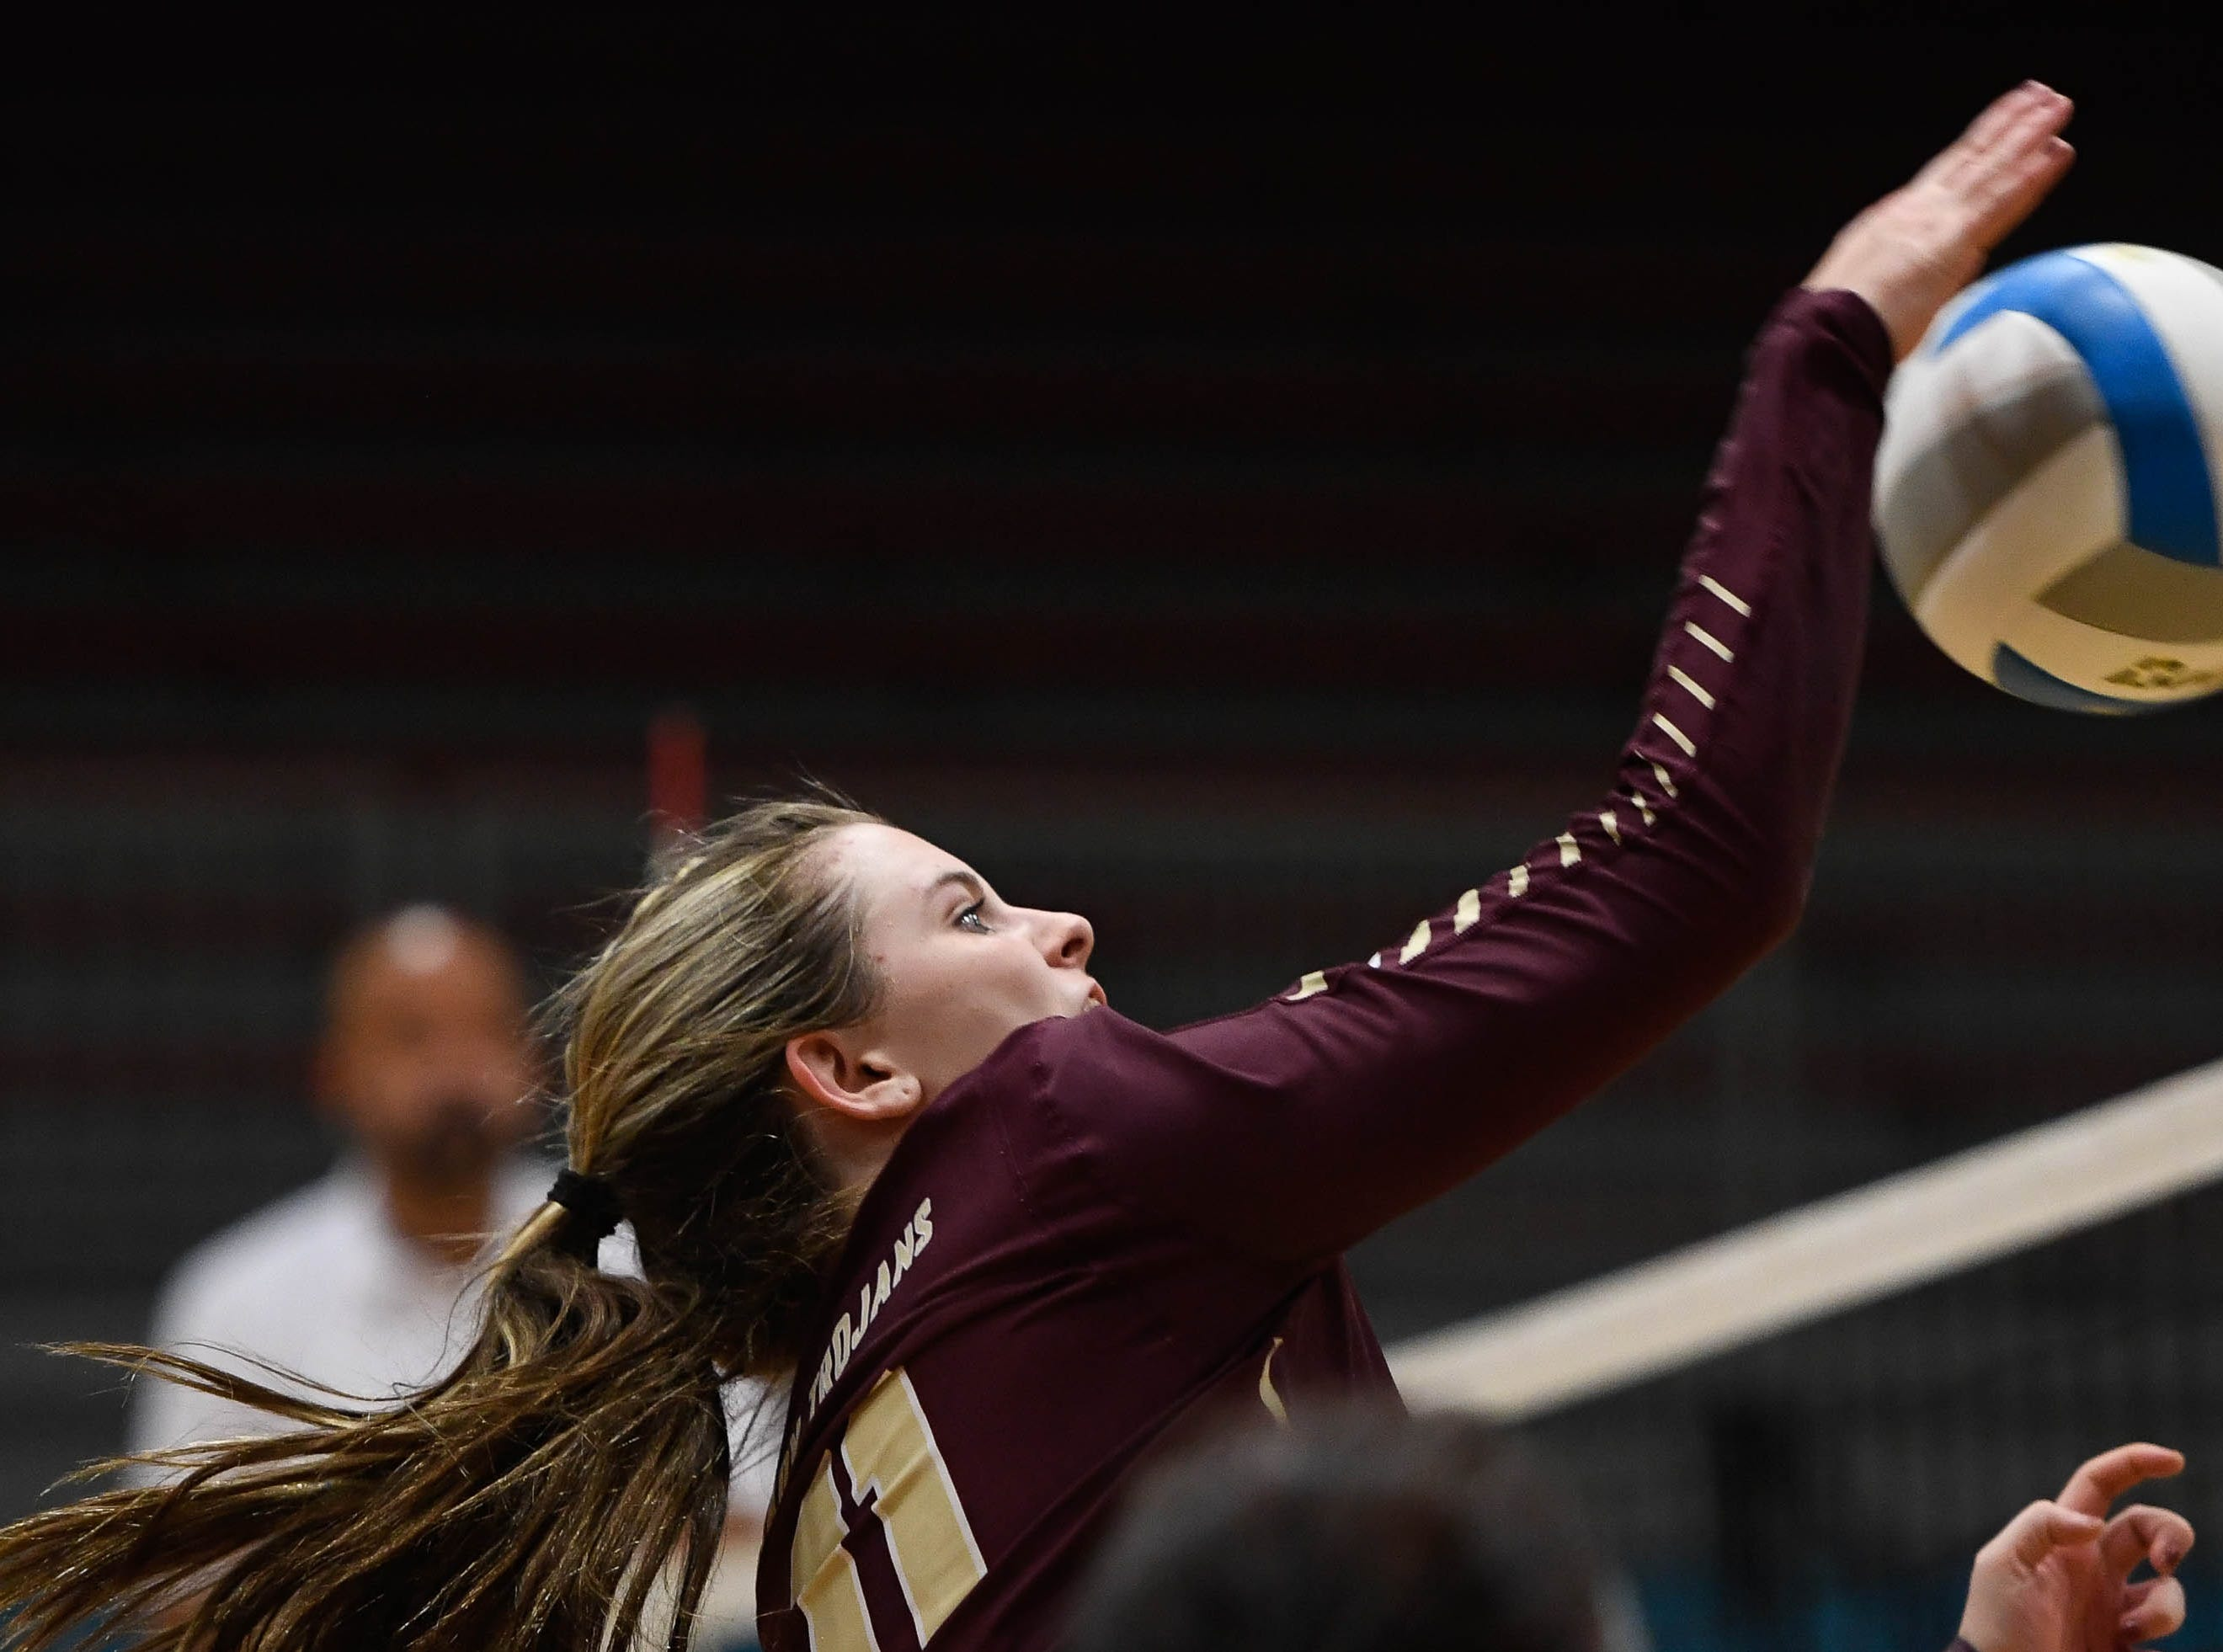 Webster's Maggie Jones (11) plays at the net as the Henderson County Lady Colonels play the Webster County Lady Trojans in the District Volleyball Tournament championship match in Morganfield, Tuesday, October 9, 2018.